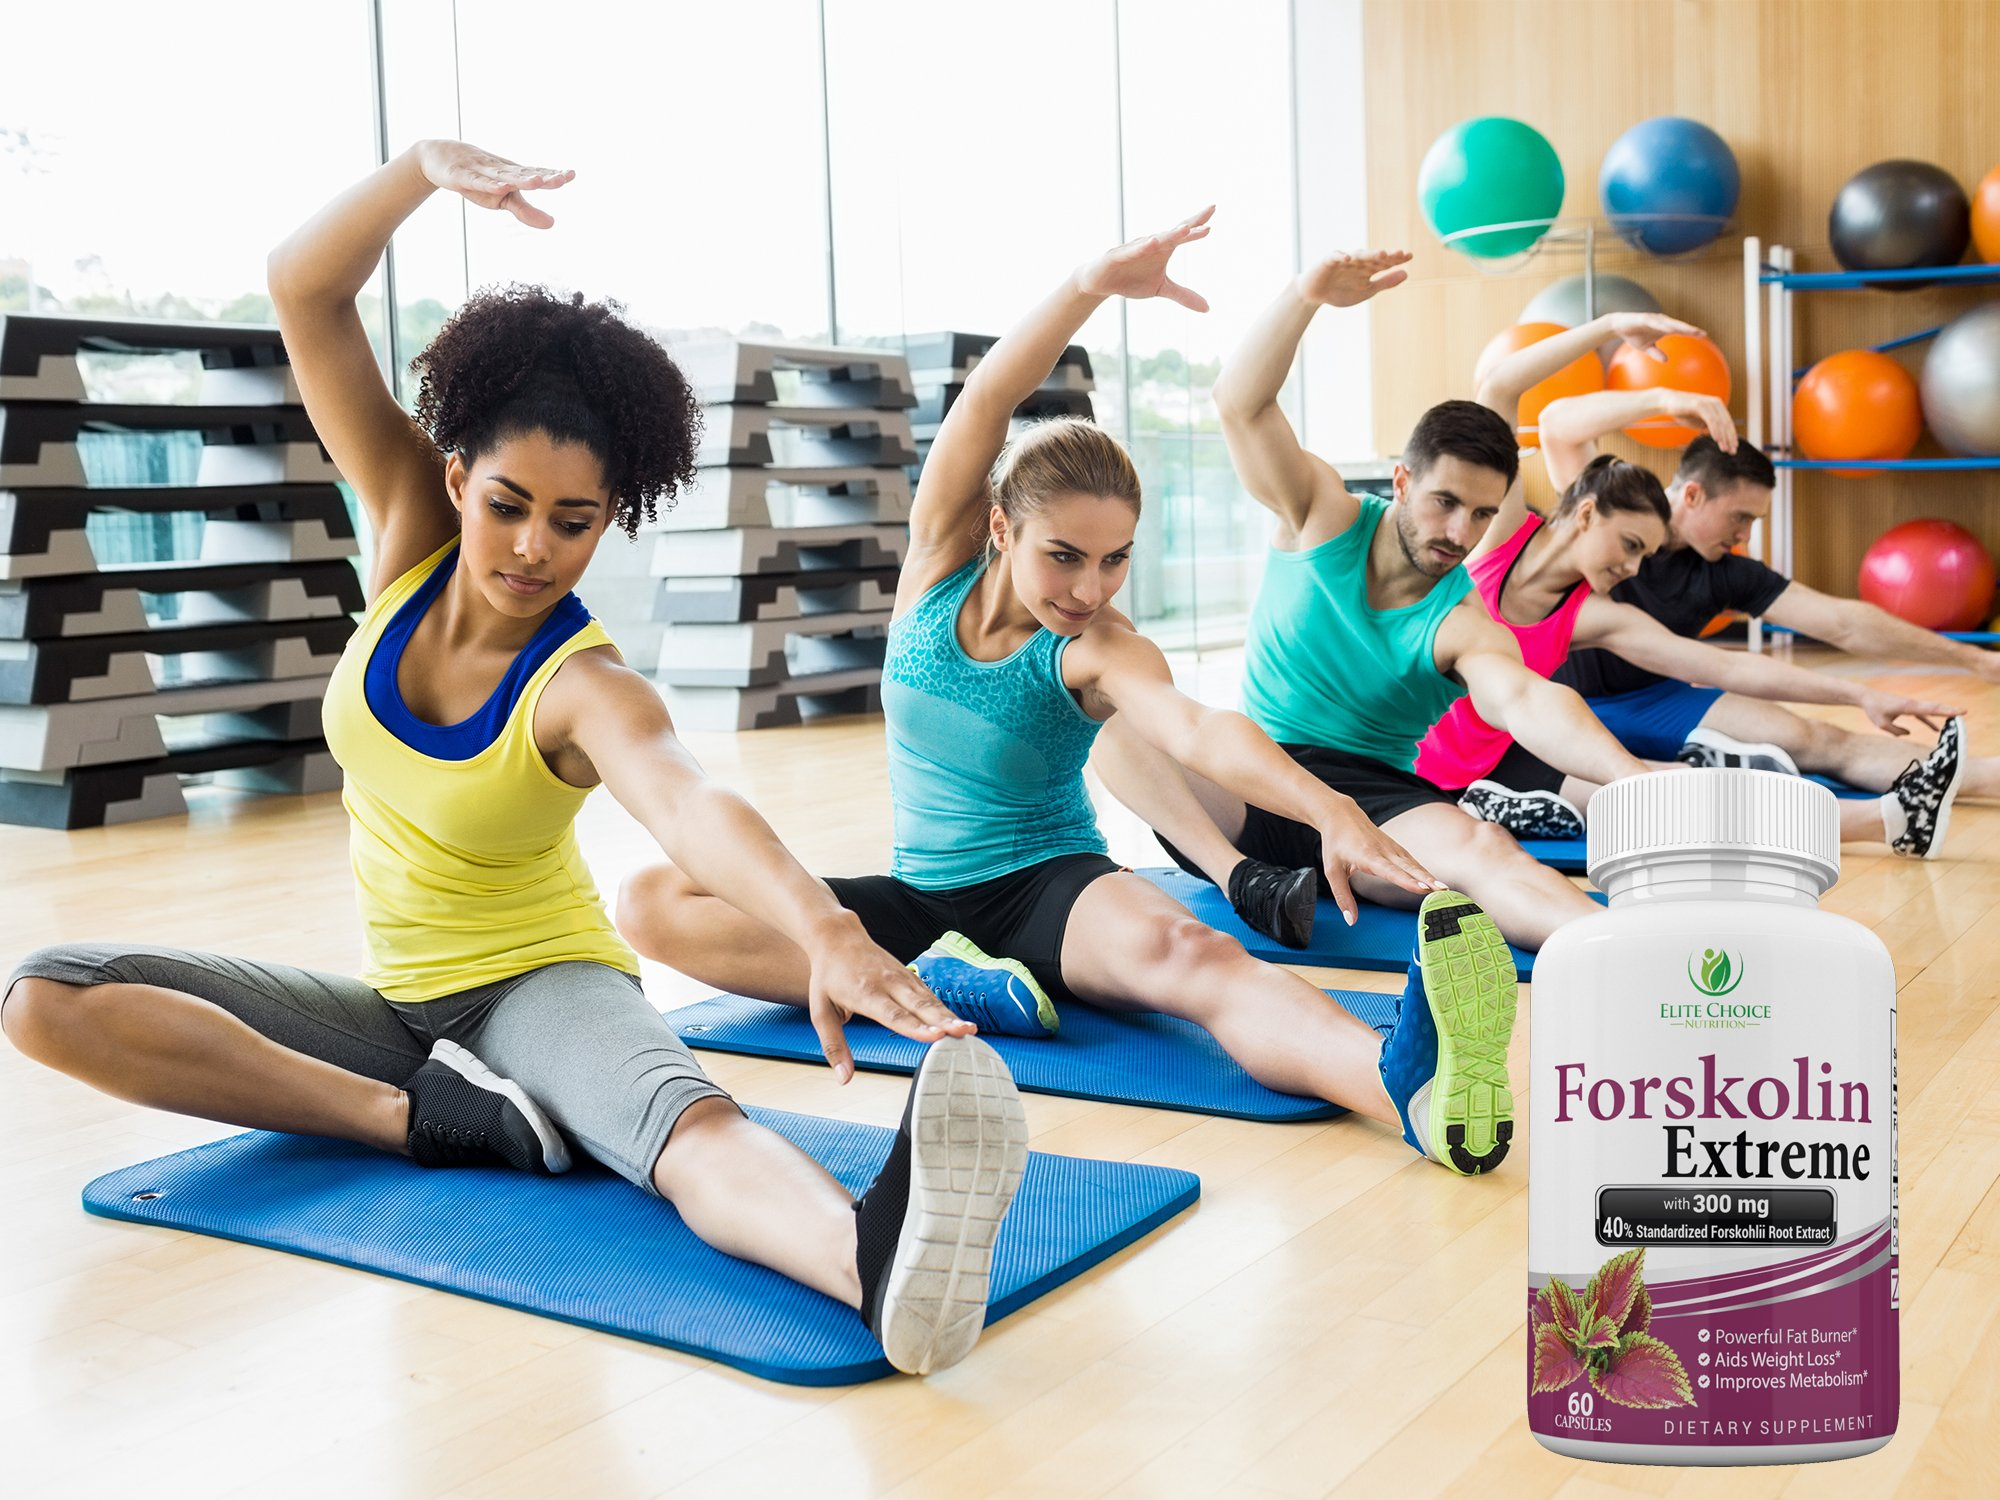 Forskolin EXTREME Supplemeny – Premium Extract 100% Pure STRONGEST - Weight Loss Pill 40% Standardized - up to 2 Month Supply - Best Fat Burner Appetite Suppressant Supplement & Metabolism Booster - N